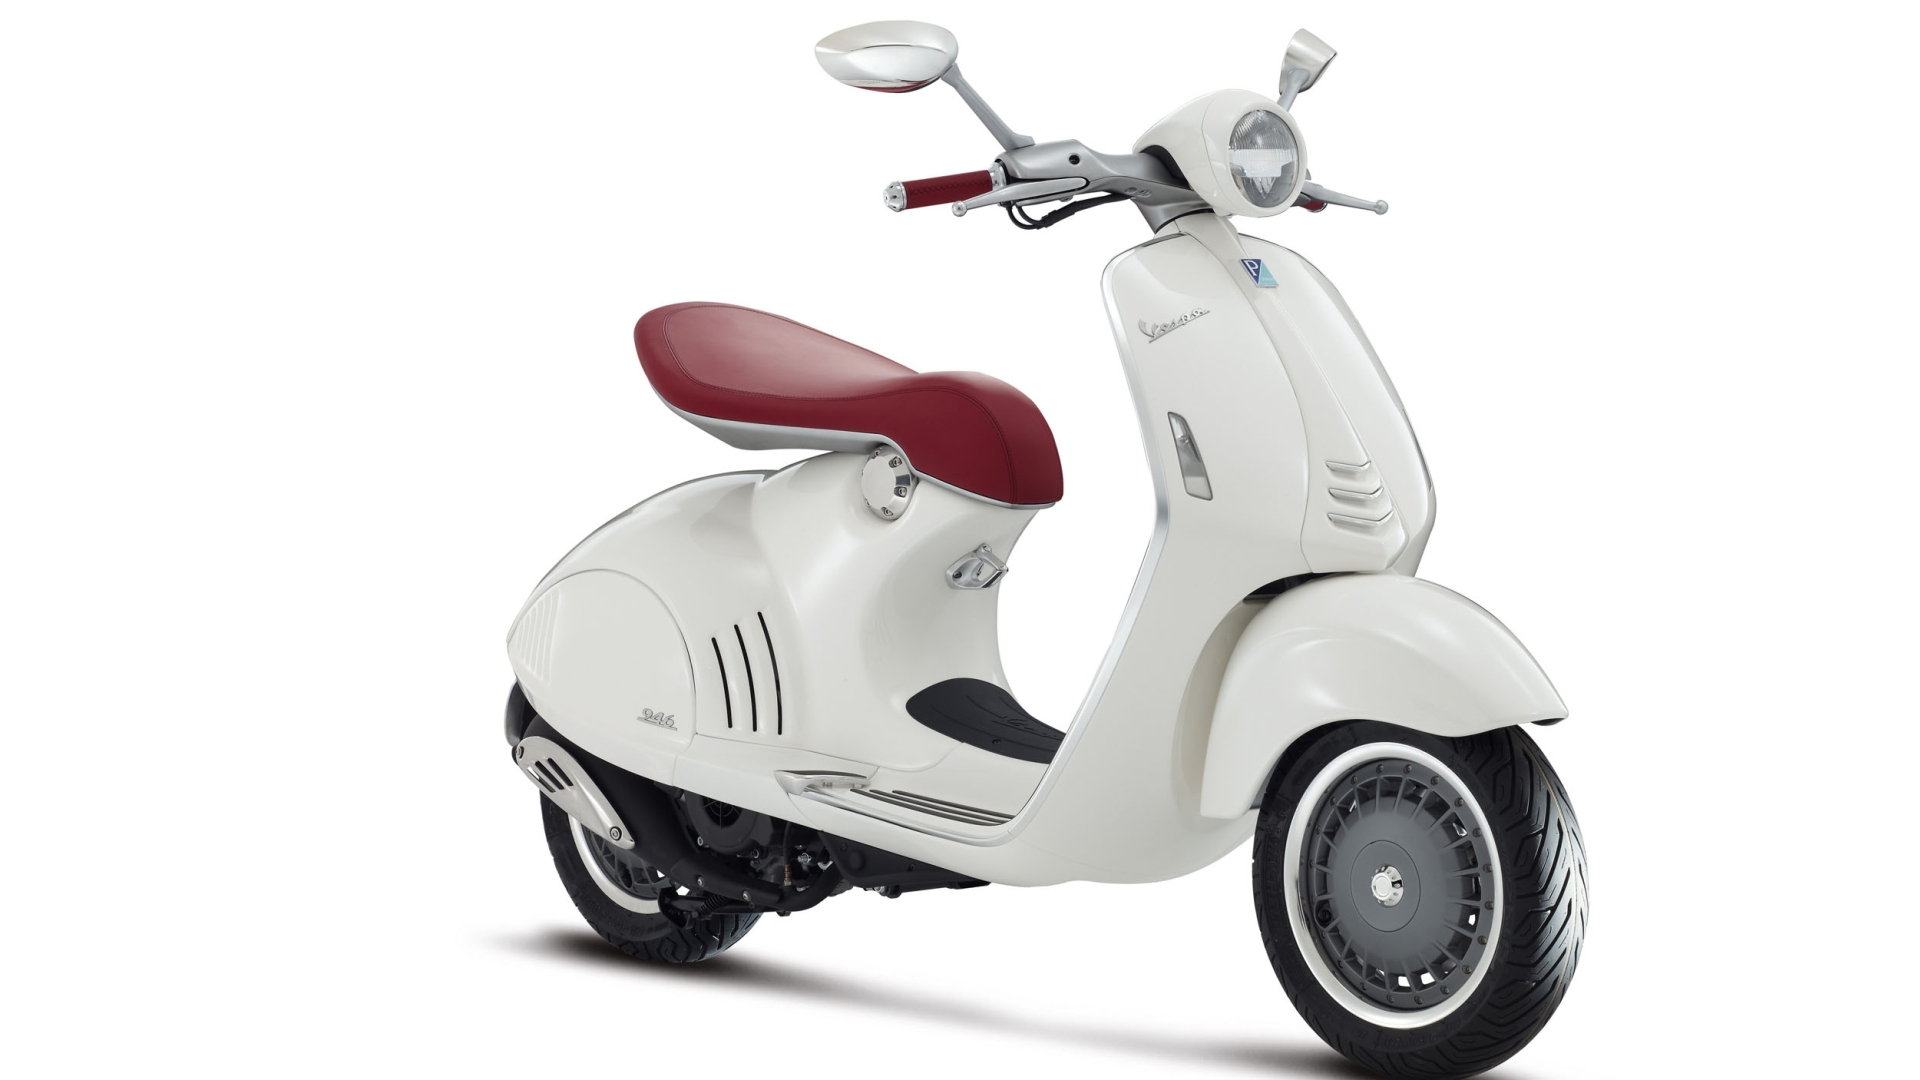 2013 Vespa 946, a Modern Tribute to the Scooters of Yore [Photo ...vespa